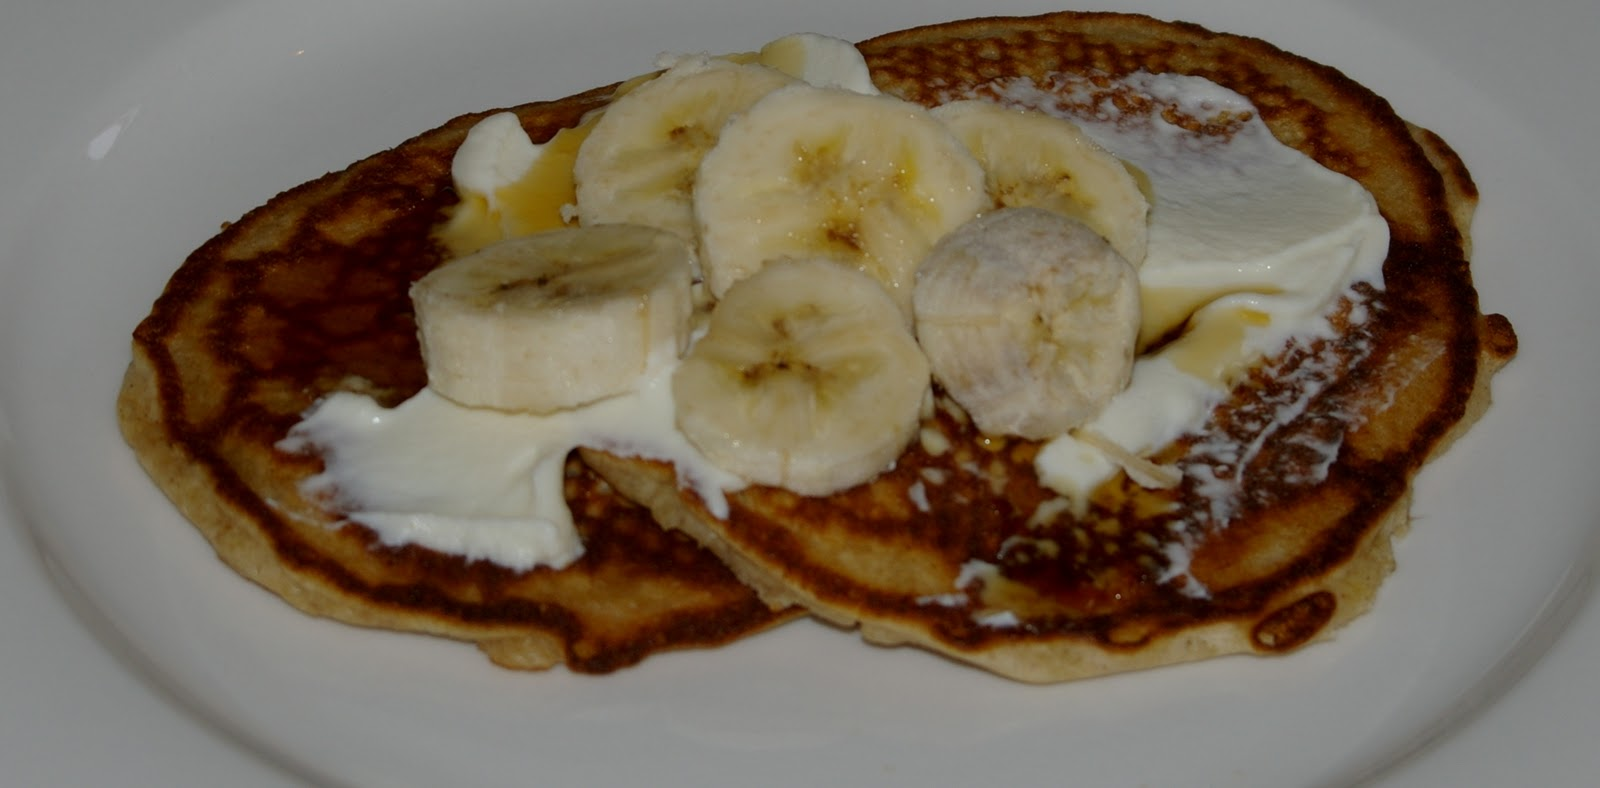 Buckwheat Pancakes with Ricotta, Maple Syrup and Banana